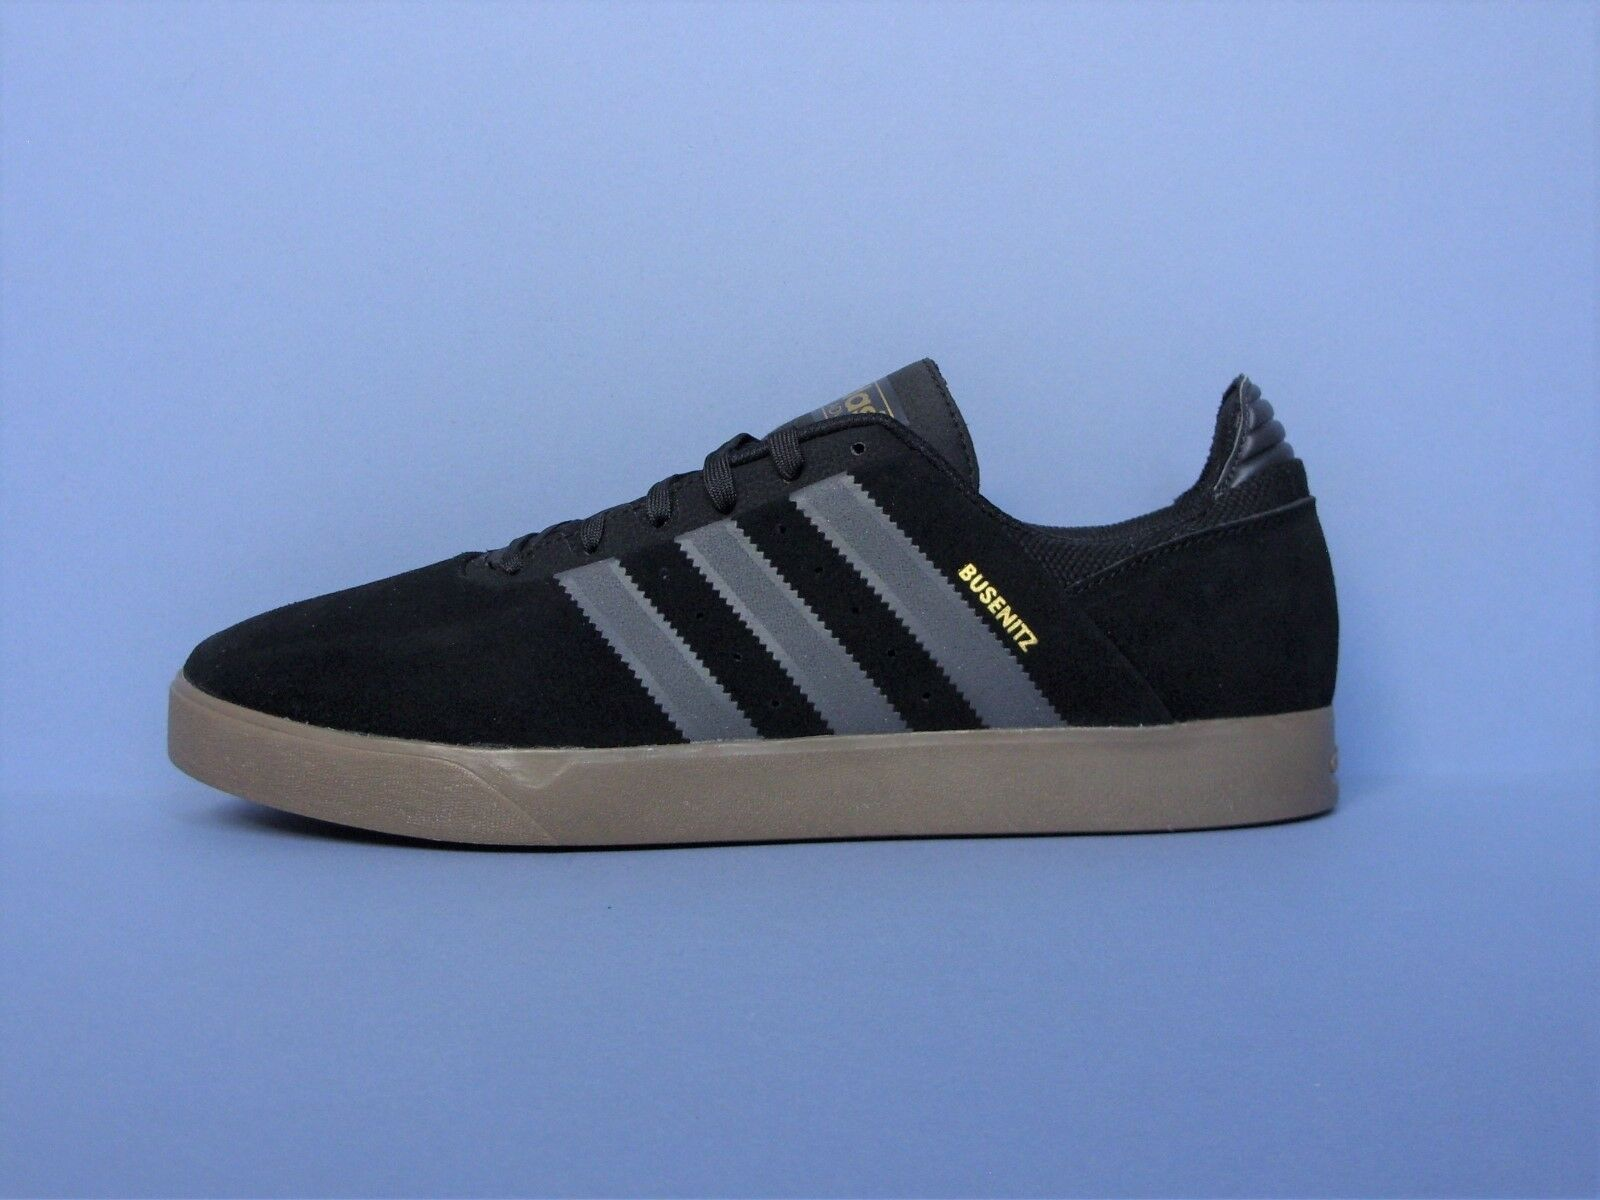 the best attitude be1e5 73589 ADIDAS BUSENITZ ADV MENS TRAINERS SKATE SKATE SKATE SHOES BLACK SUEDE UK  SIZE 10 10d404